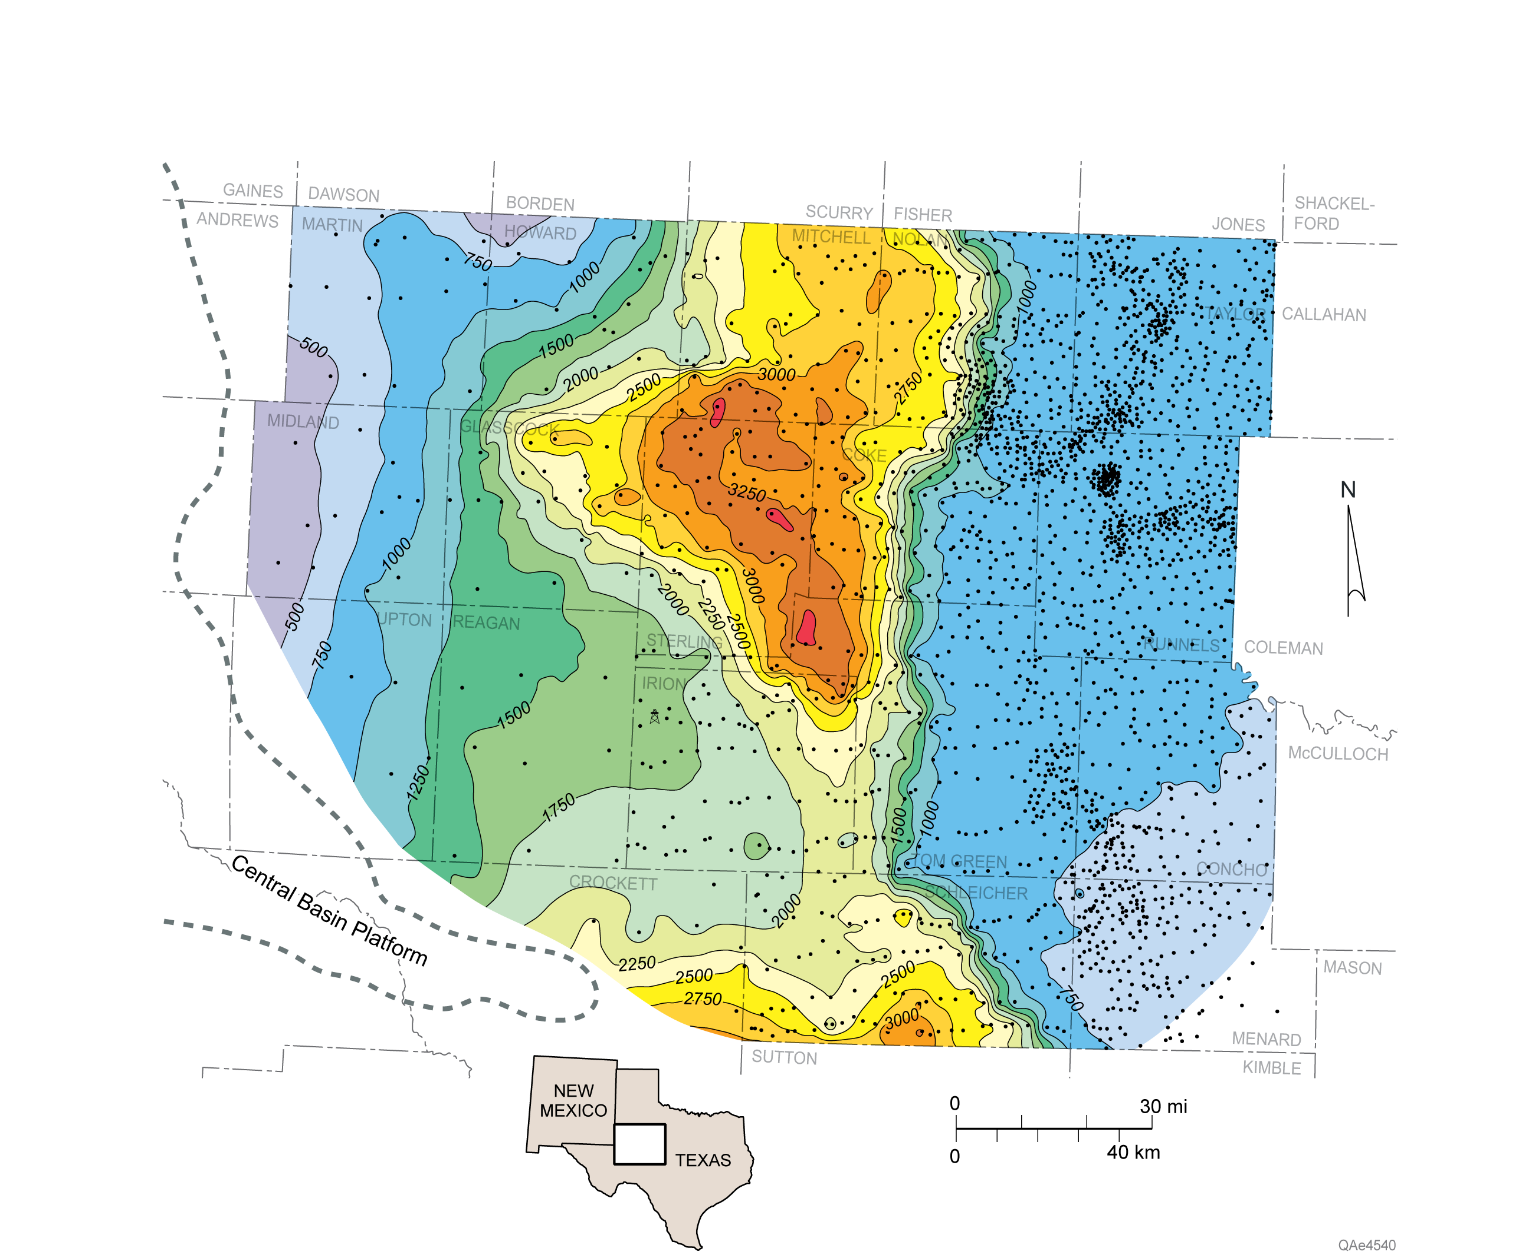 Isochore map of the Wolfcampian upper Cisco Group showing location of wells used in the study. Thickest strata coincide with a depocenter of much-thickened slope systems comprising siliciclastic and carbonate debris-flow deposits and thick sections of slope mudrock. Slope sandstones and limestones are among the most productive facies of the southern Eastern Shelf.